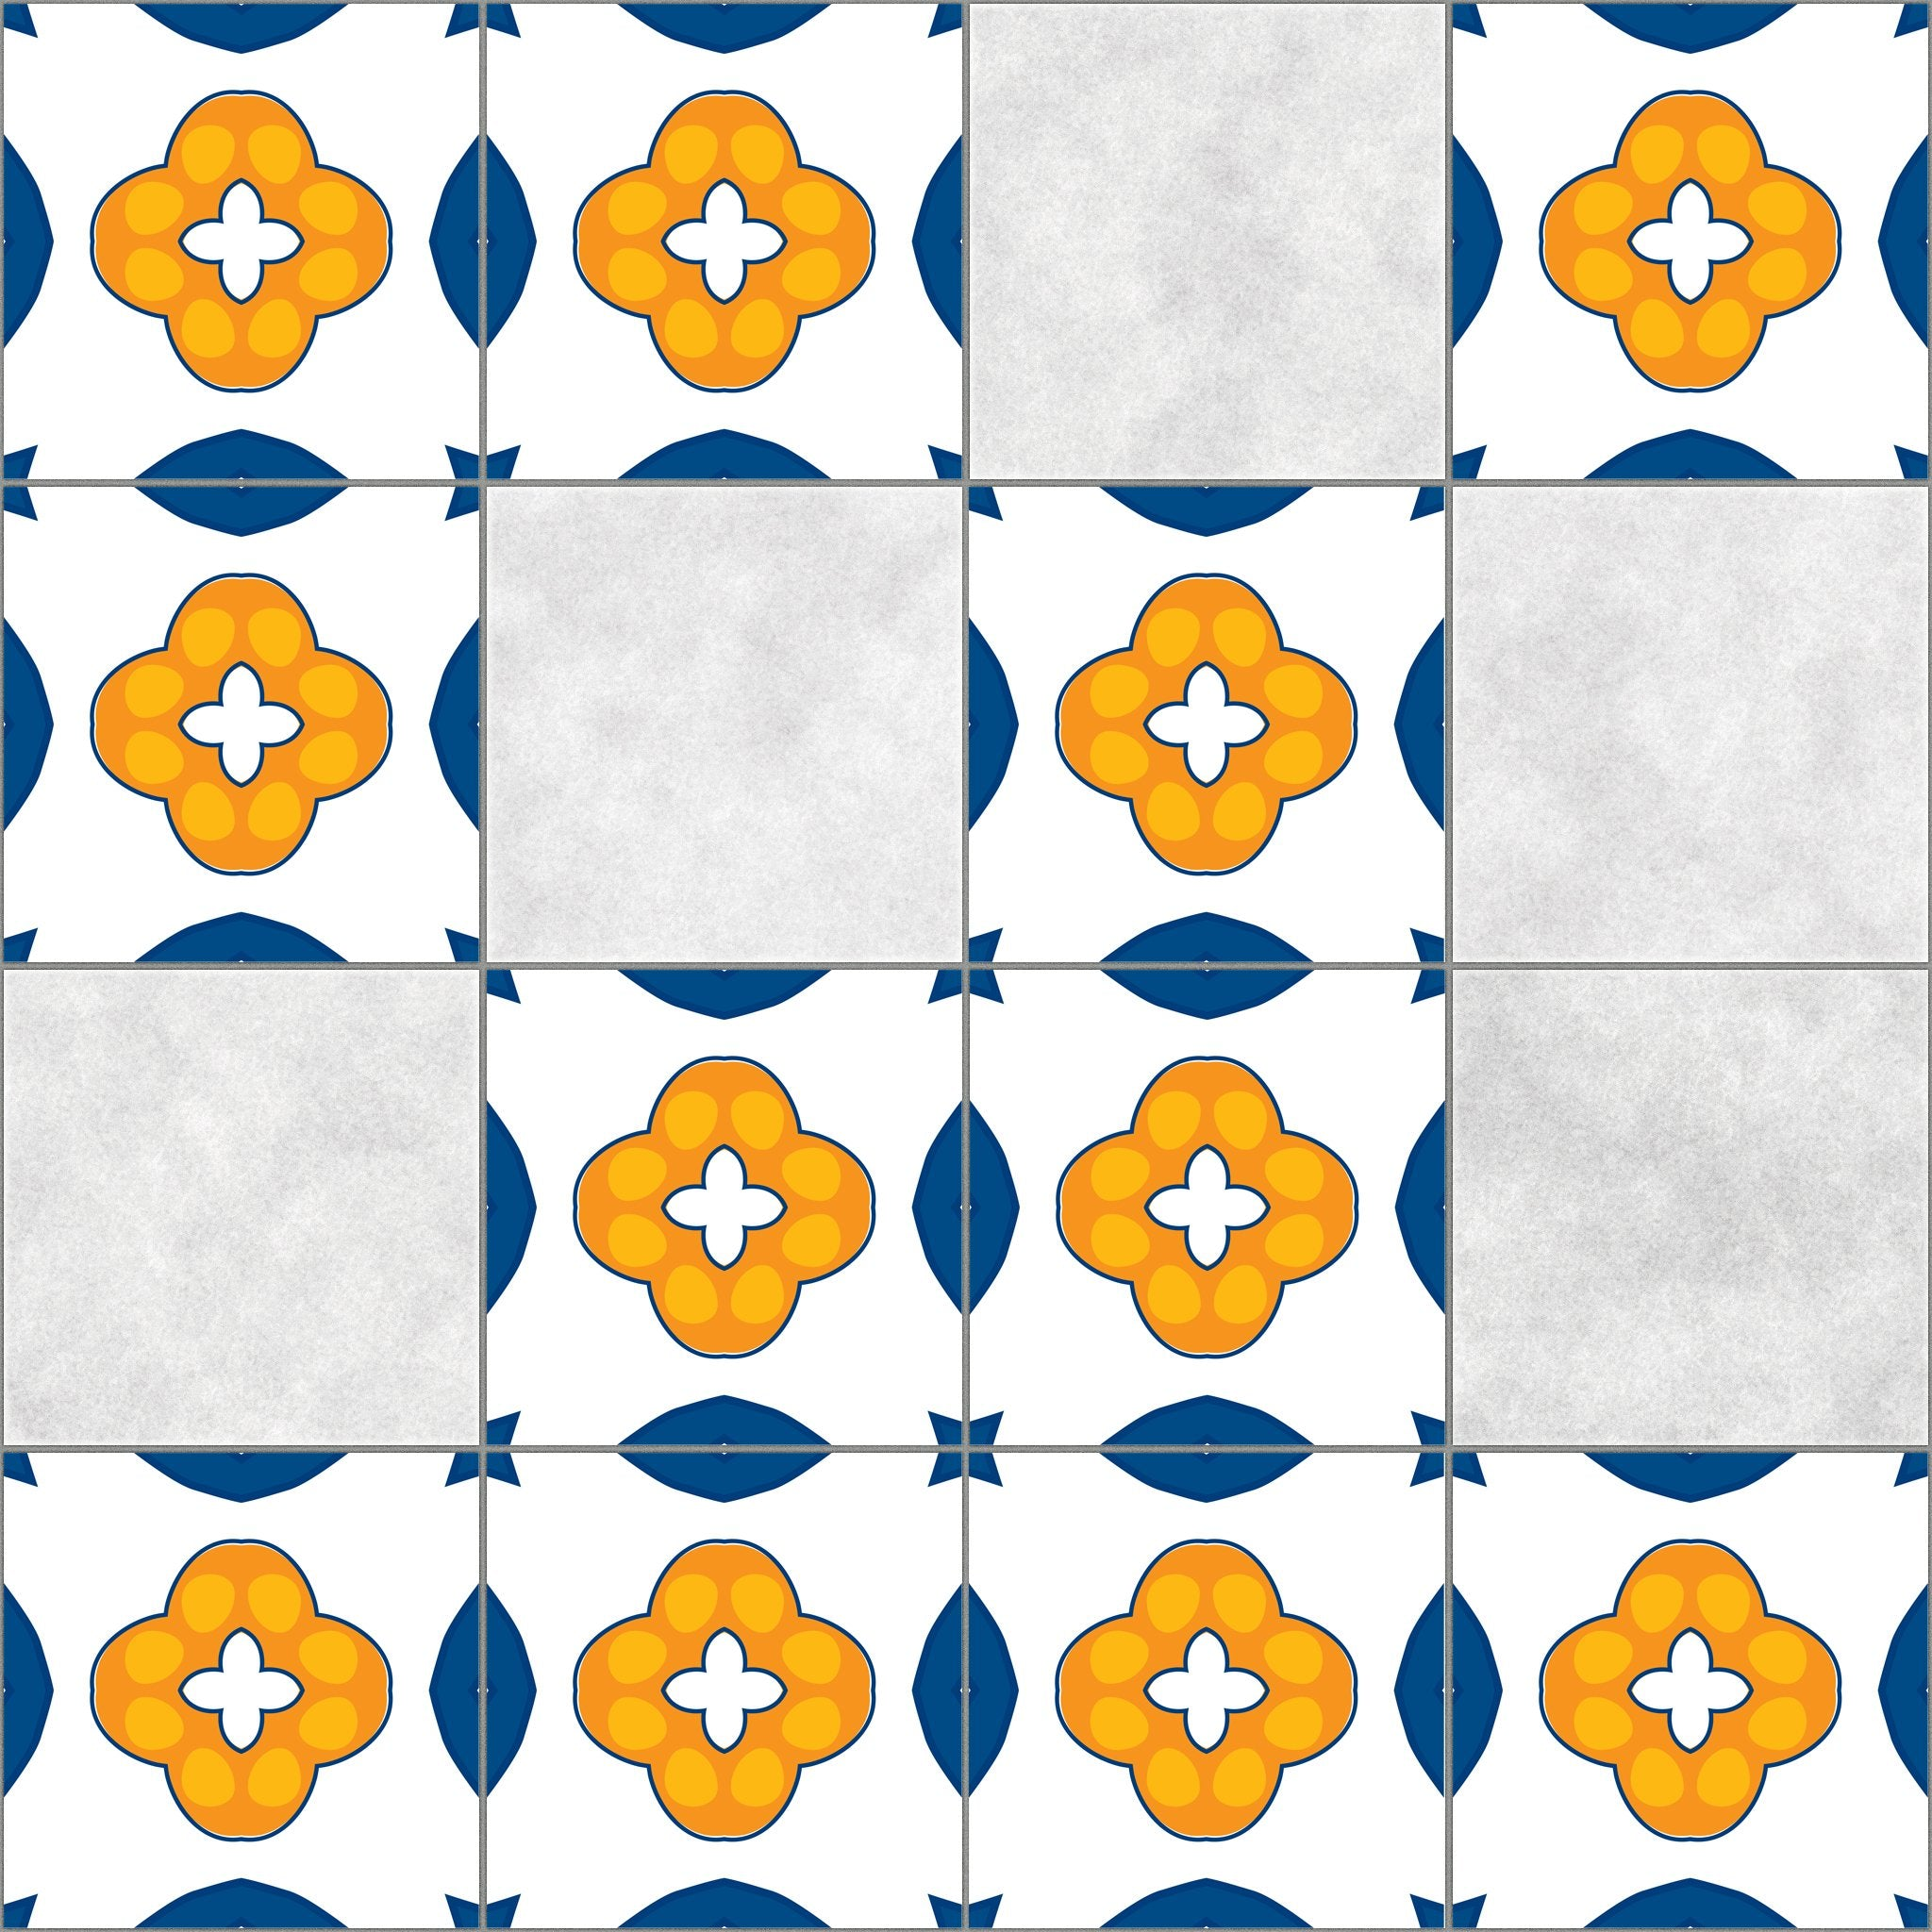 Tile stickers - KP111